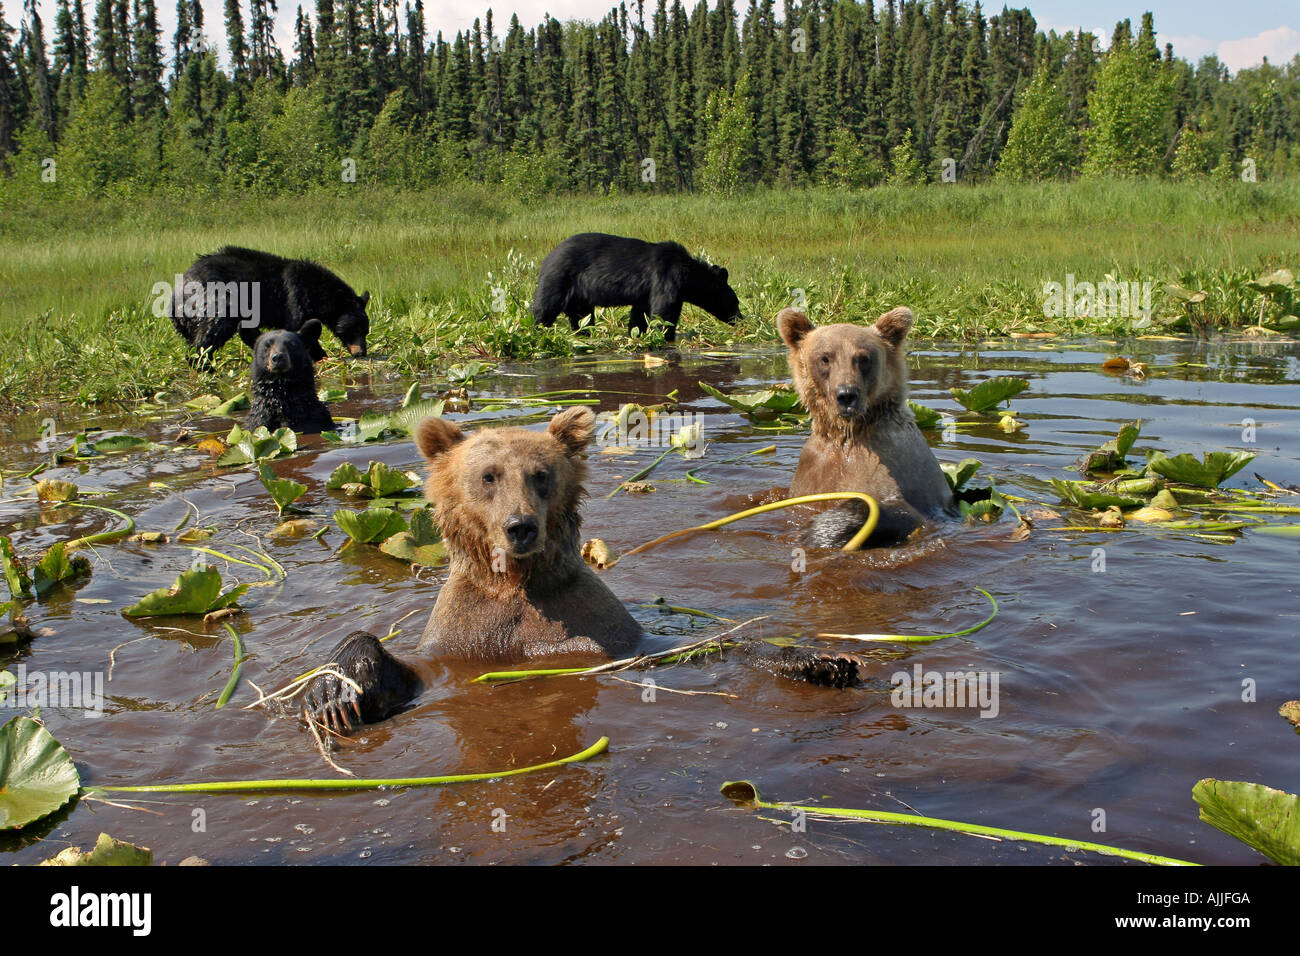 Grizzly Black Bears cooling off together in lily pond Southcentral Alaska MatSu Valley Summer - Stock Image